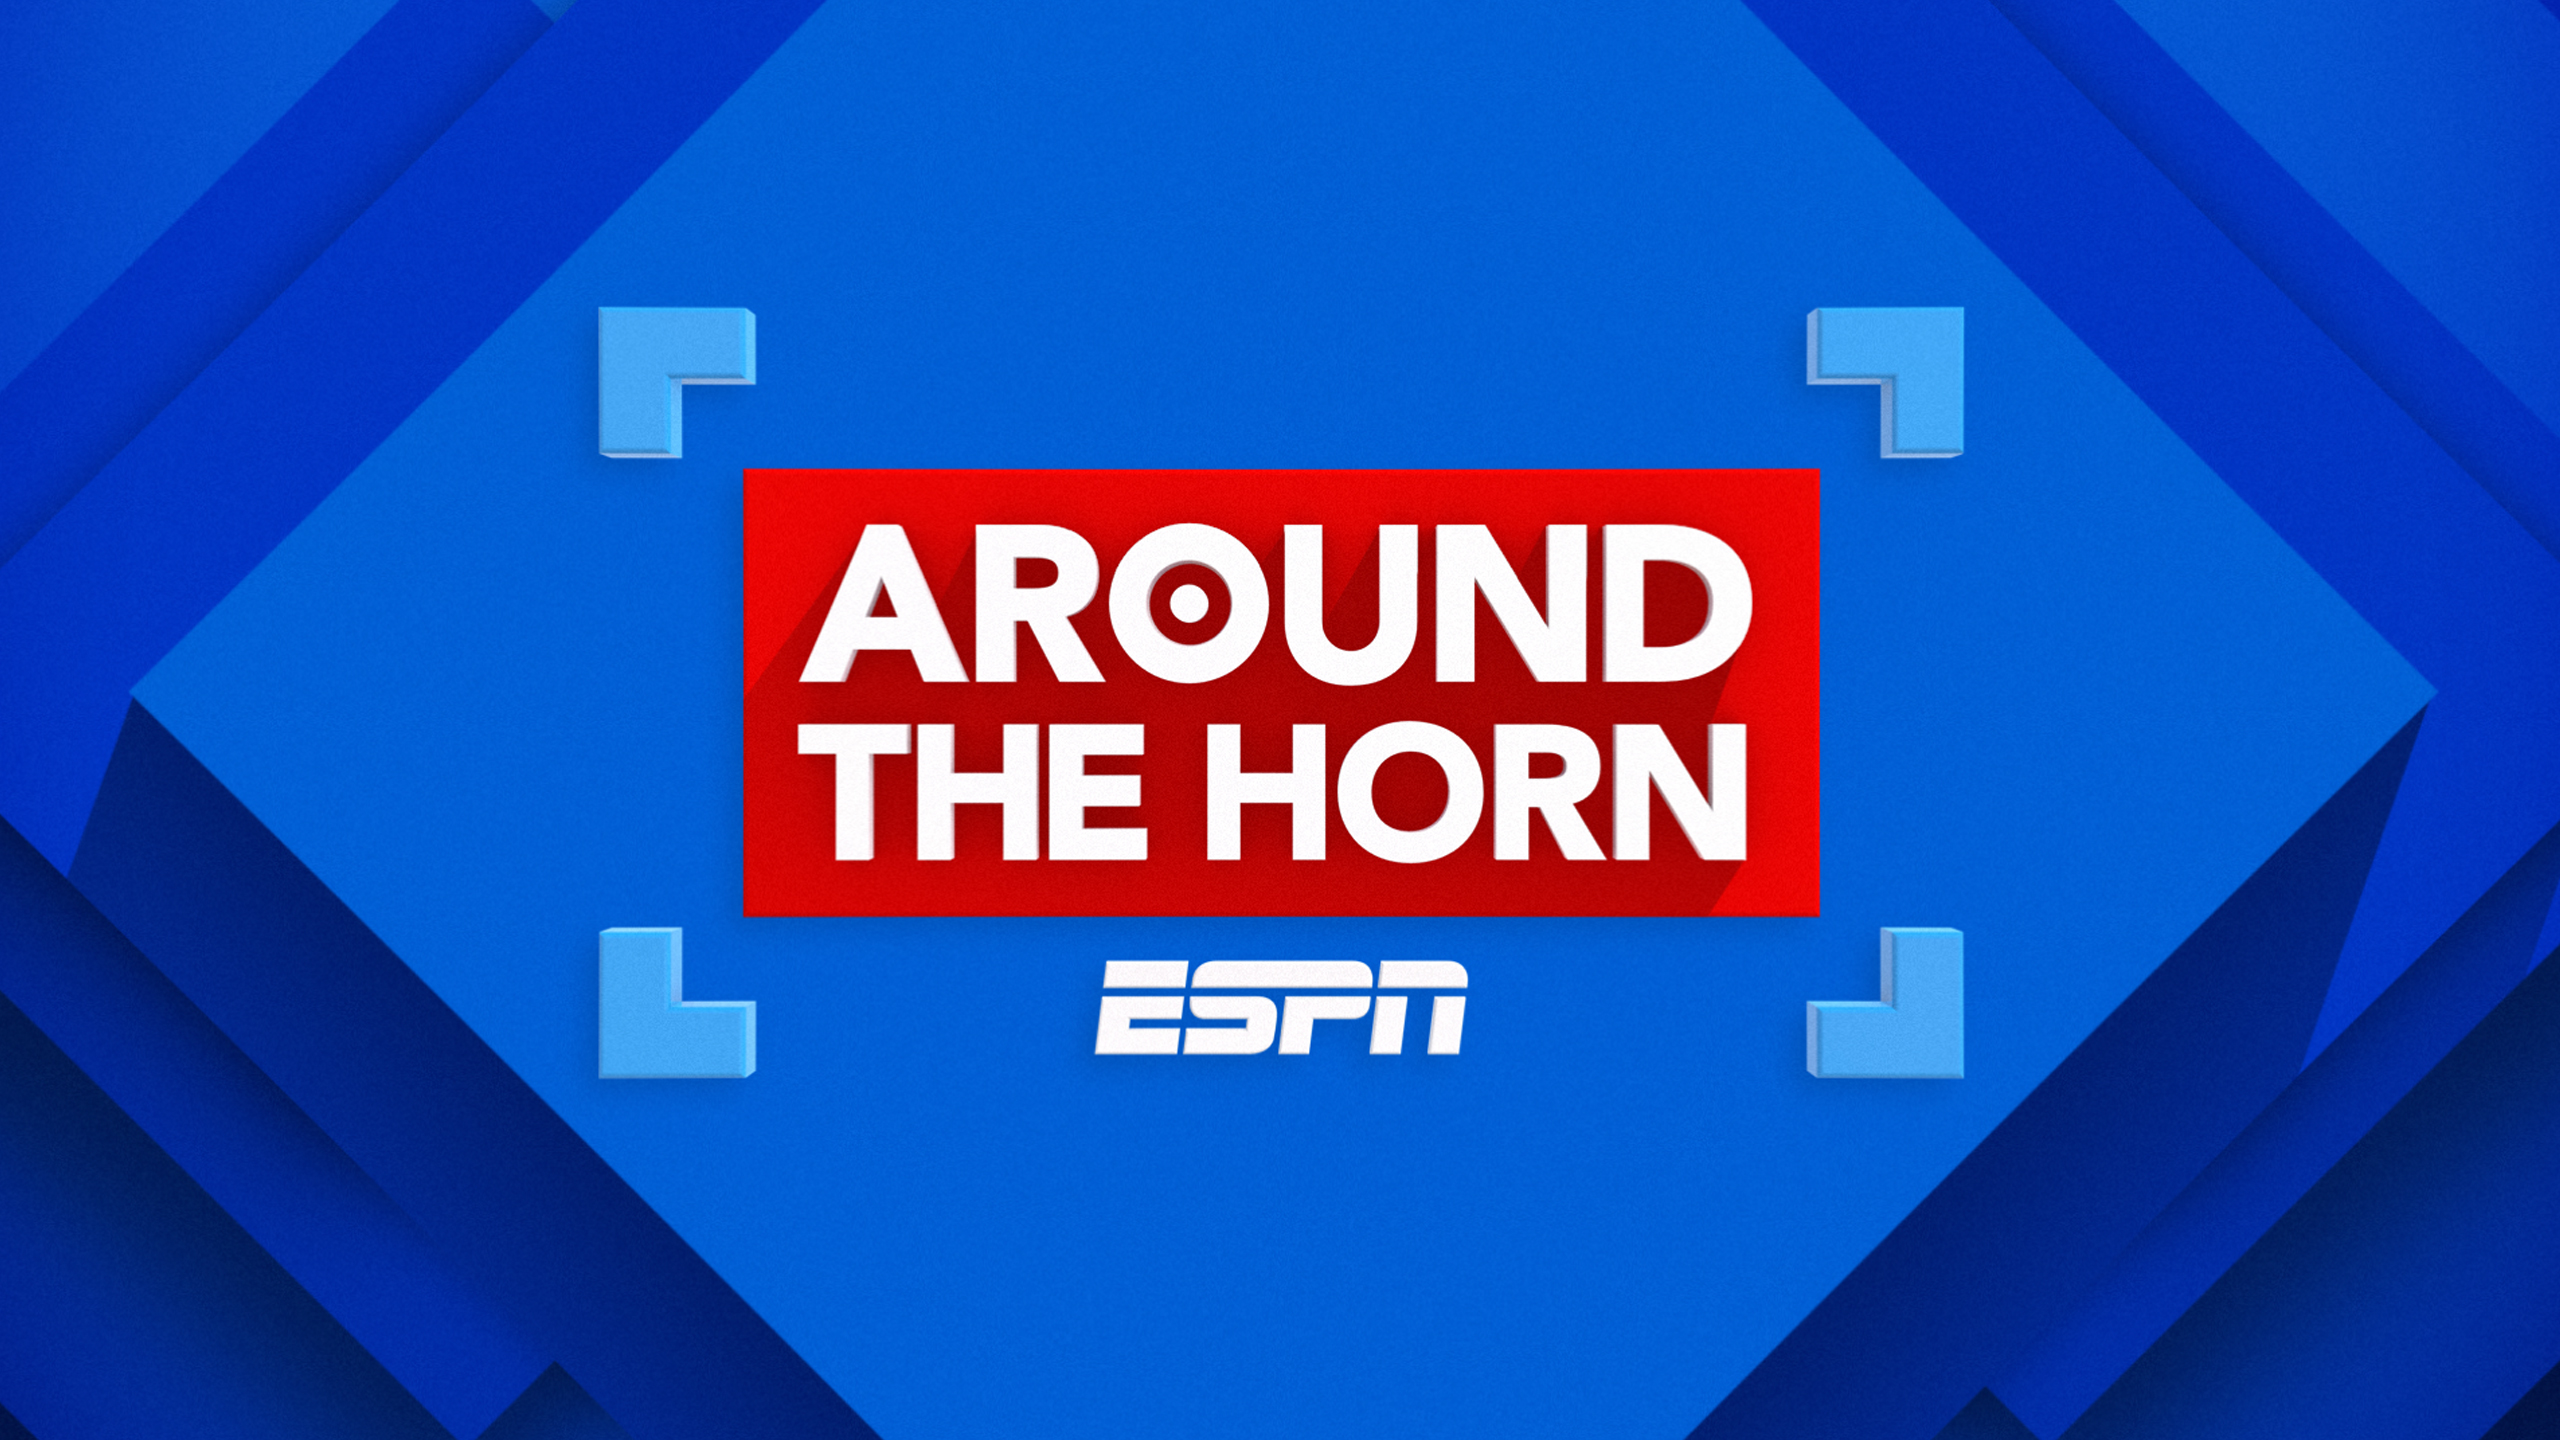 Fri, 10/19 - Around The Horn